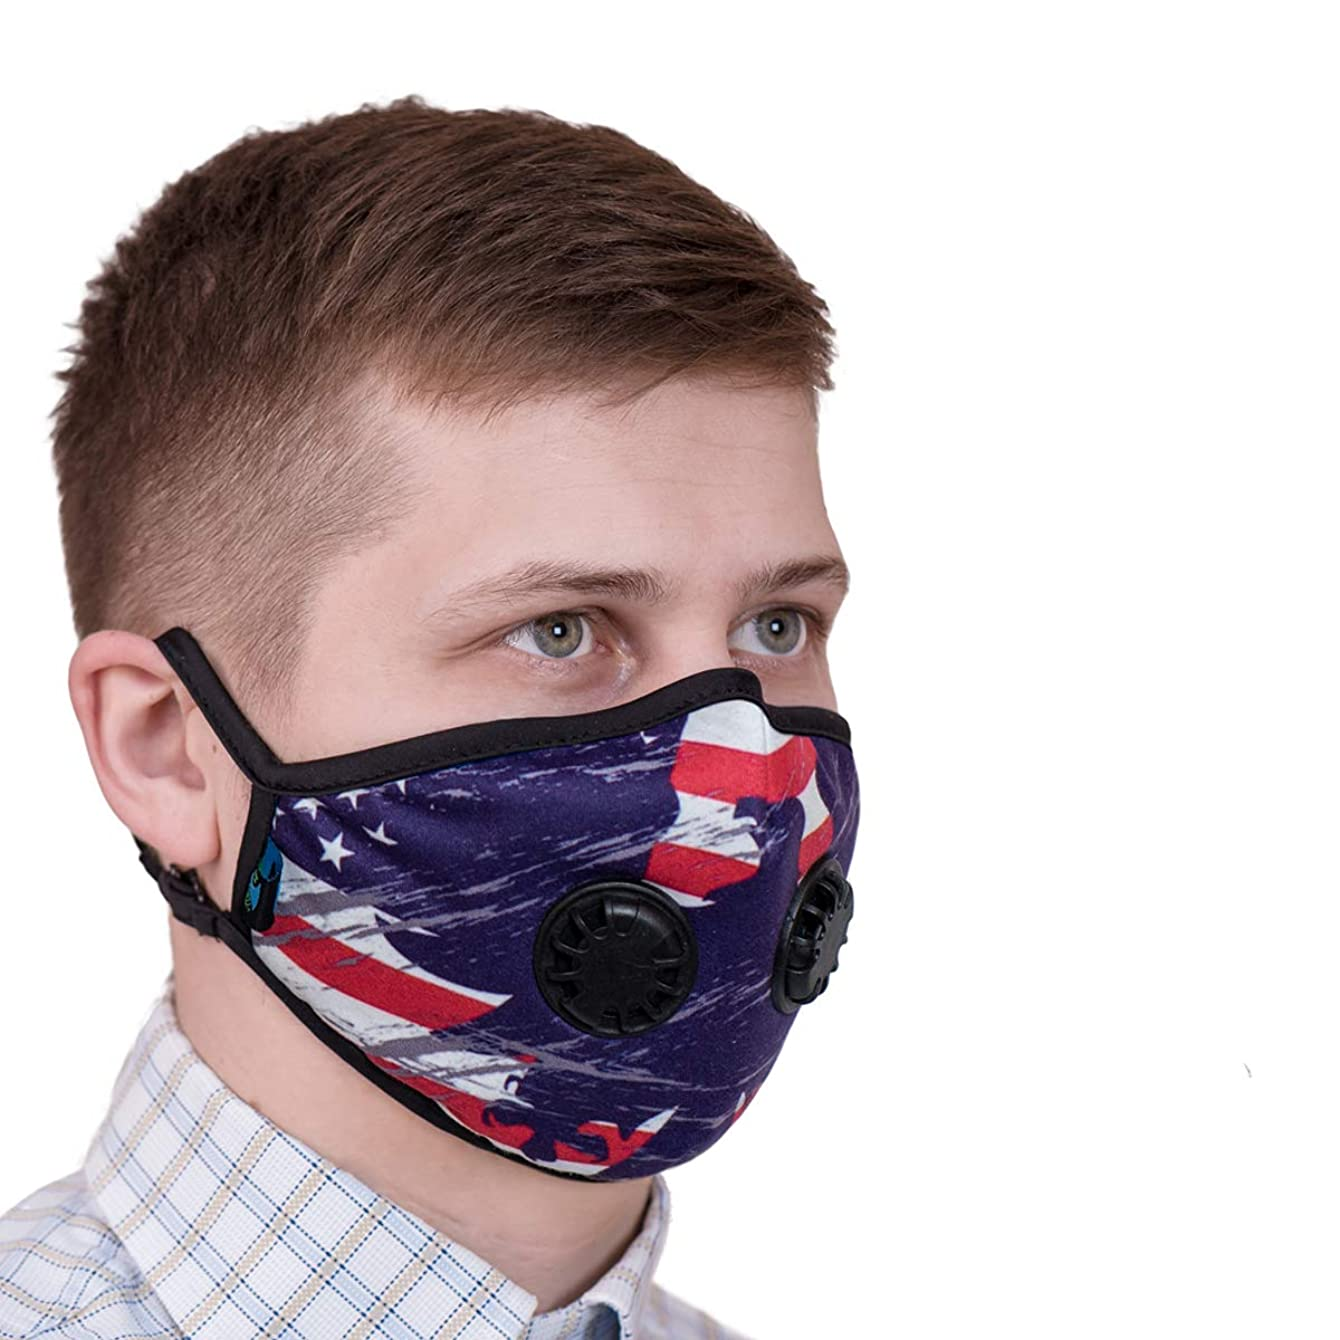 ToRespire Dust Mask N95 N99 Anti Pollution Mask Face Respirator w/ Antiviral / Activated Carbon Filters Reusable & Washable w/ Adjustable Head Straps for Men Women (Medium USA)